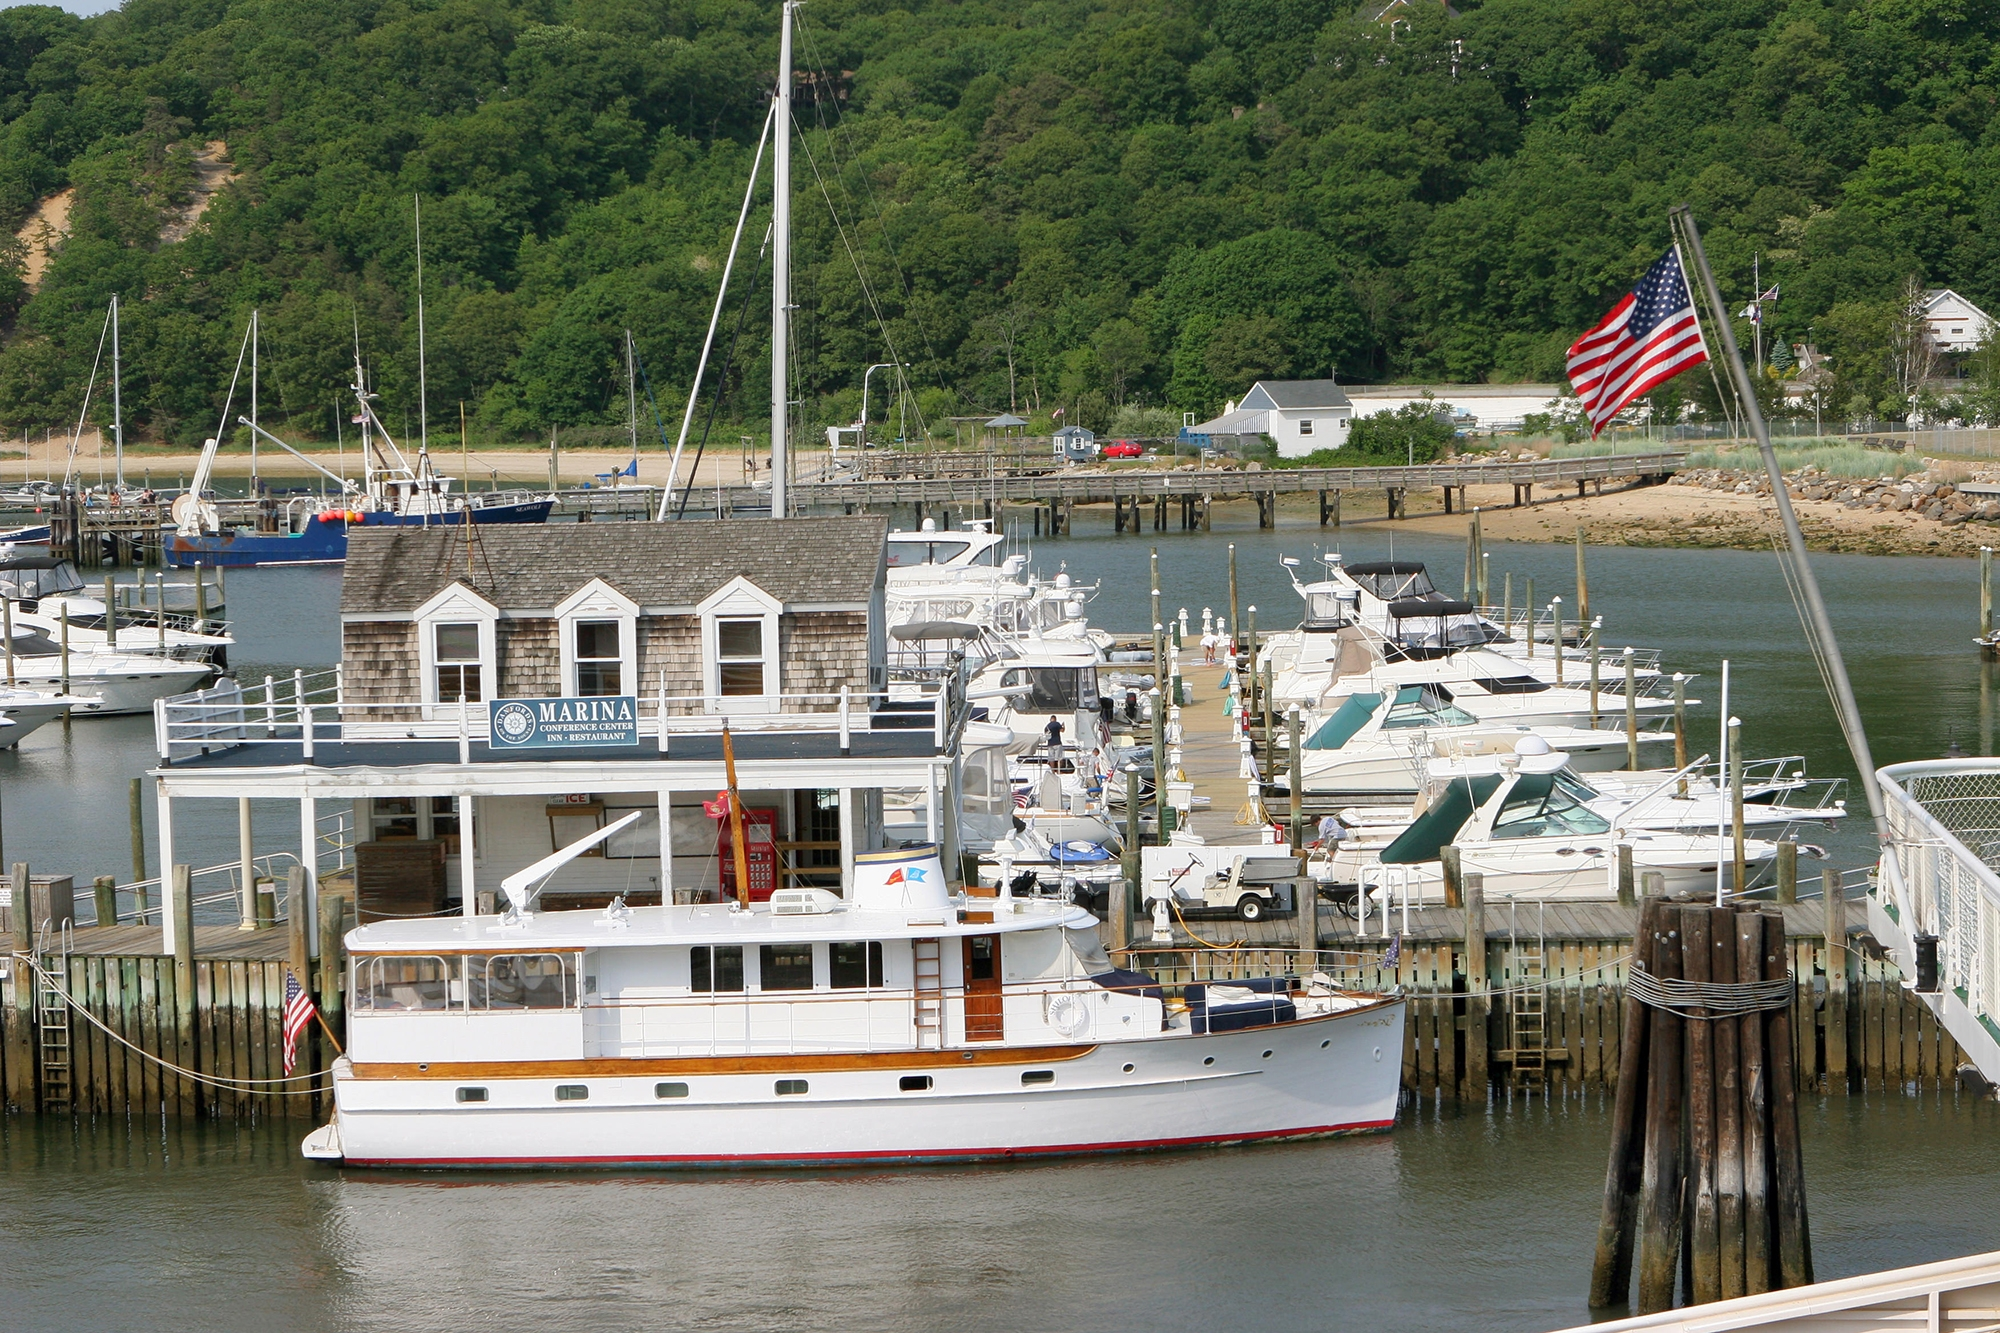 Marina in Port Jefferson